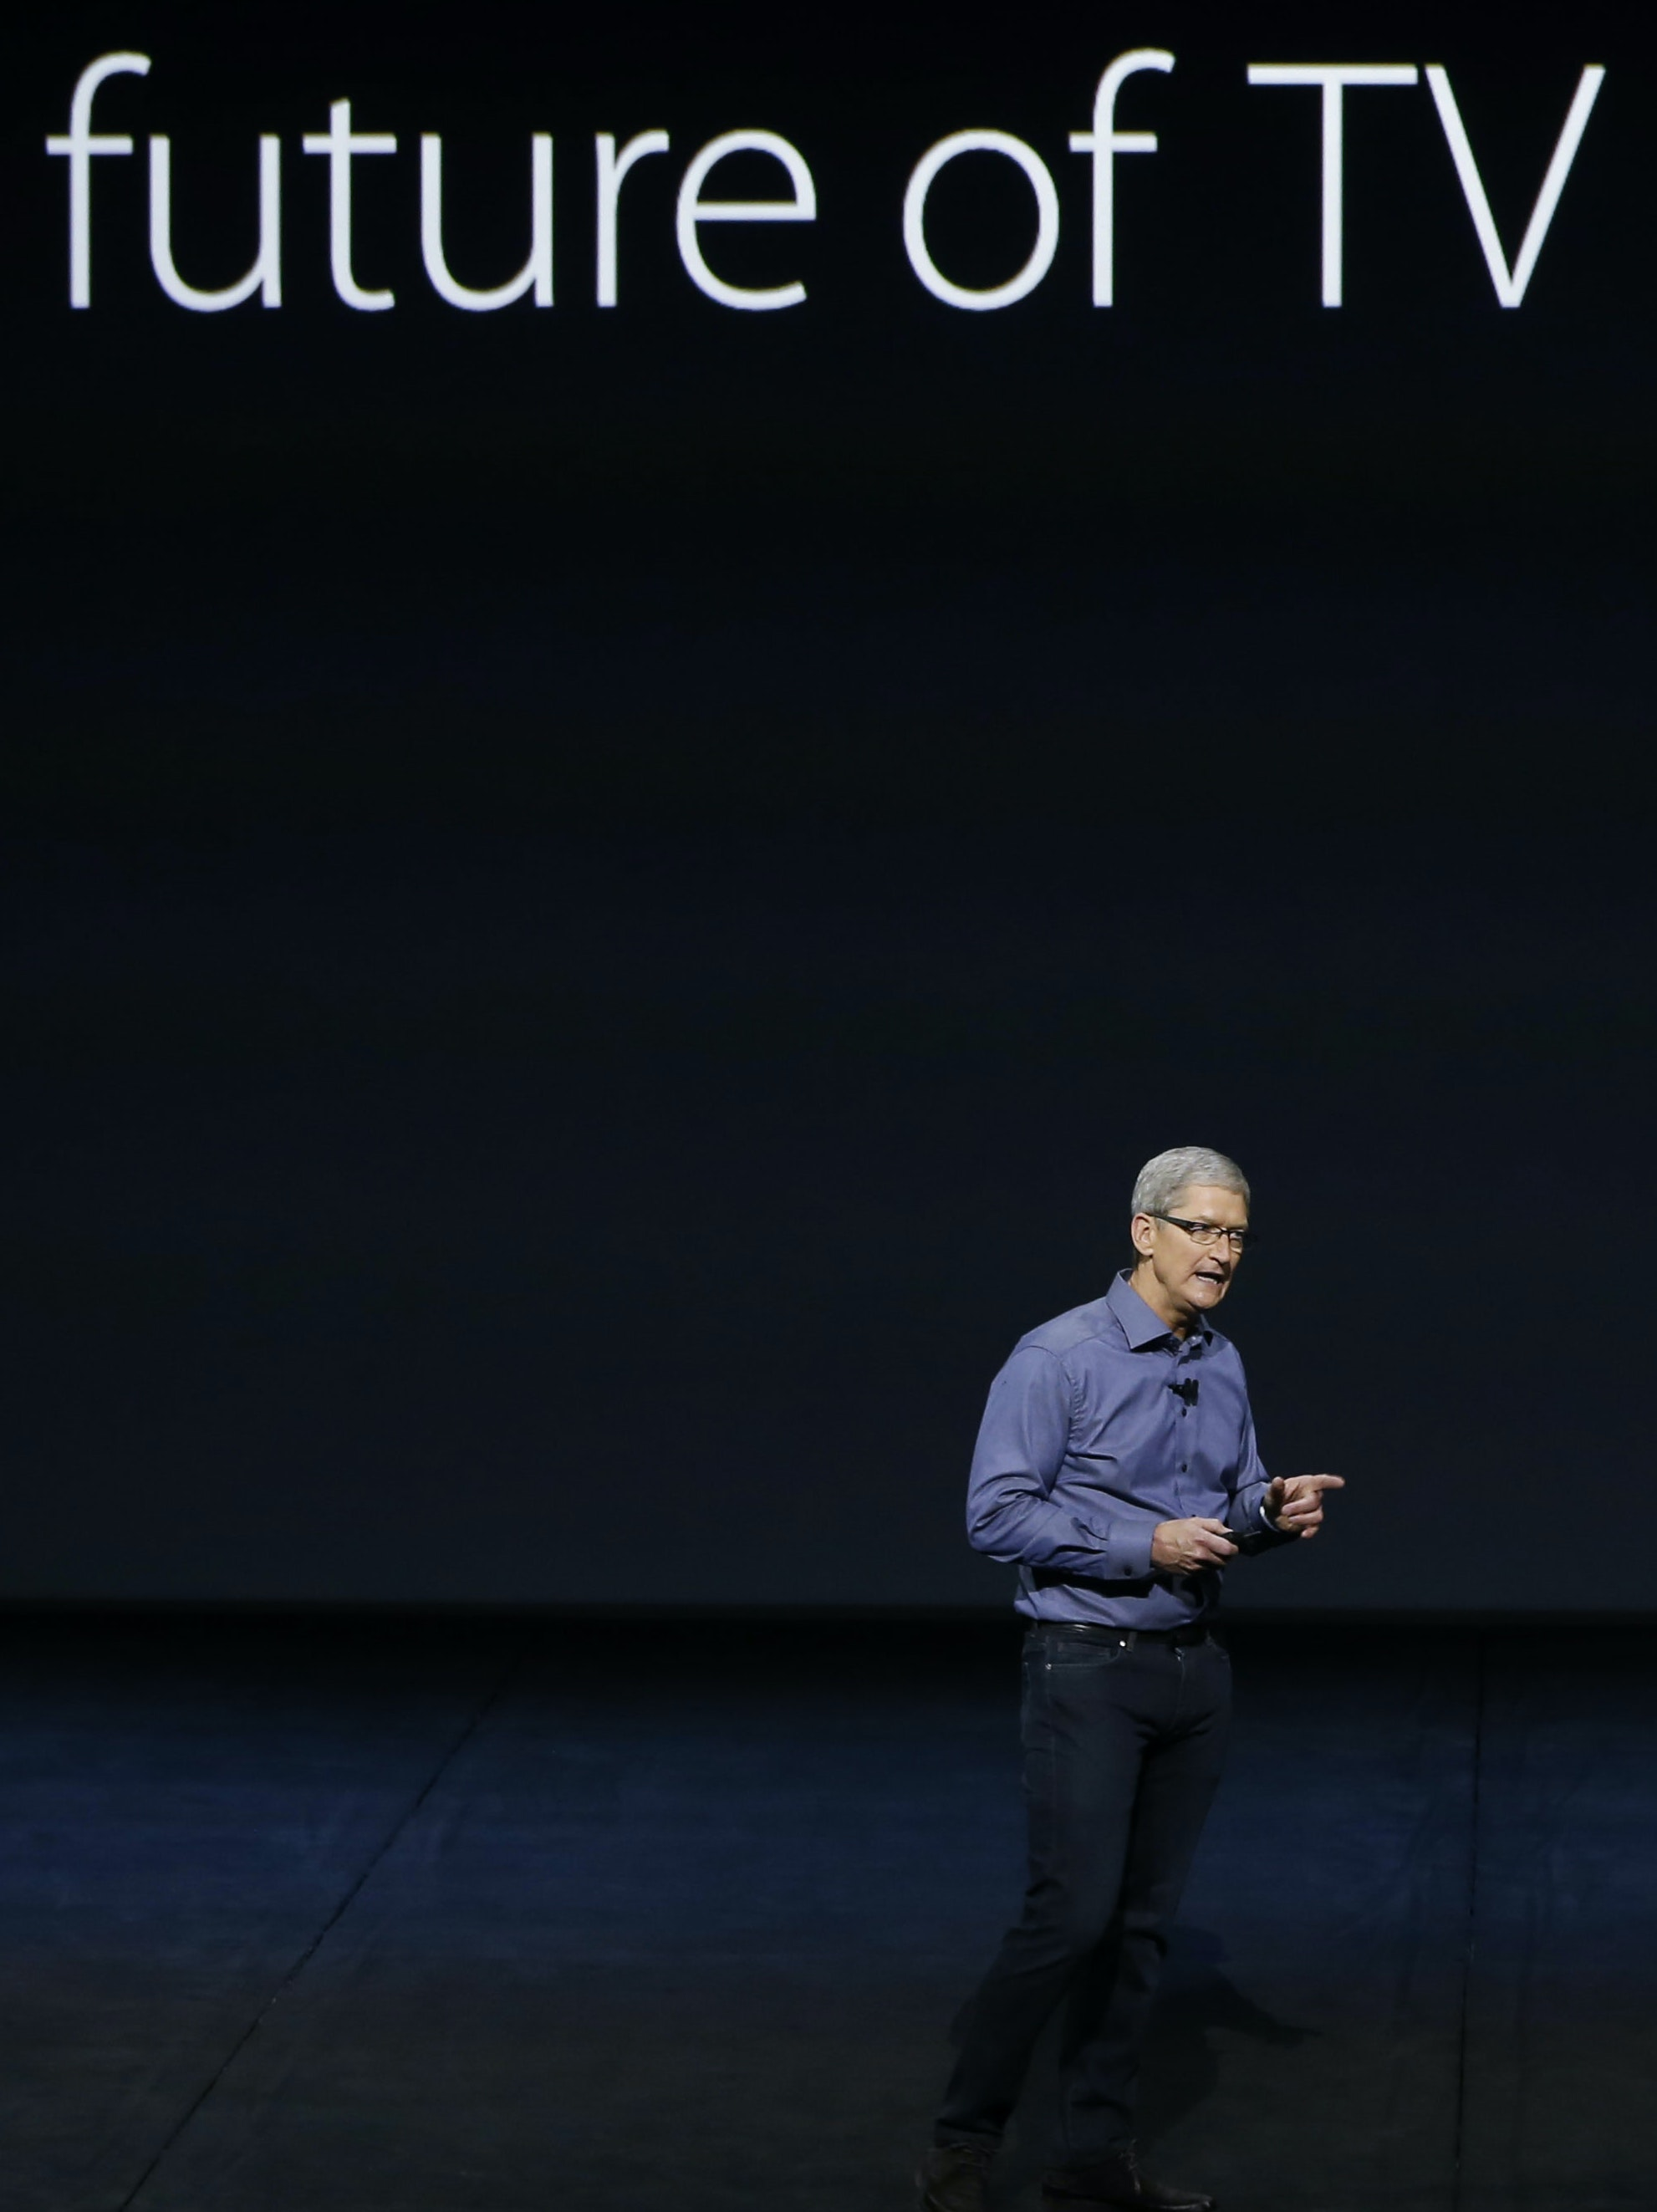 Apple CEO Tim Cook introduces the New Apple TV during a Special Event at Bill Graham Civic Auditorium September 9, 2015 in San Francisco, California. Apple Inc. is expected to unveil latest iterations of its smartphone, forecasted to be the 6S and 6S Plus. The tech giant is also rumored to be planning to announce an update to its Apple TV set-top box.